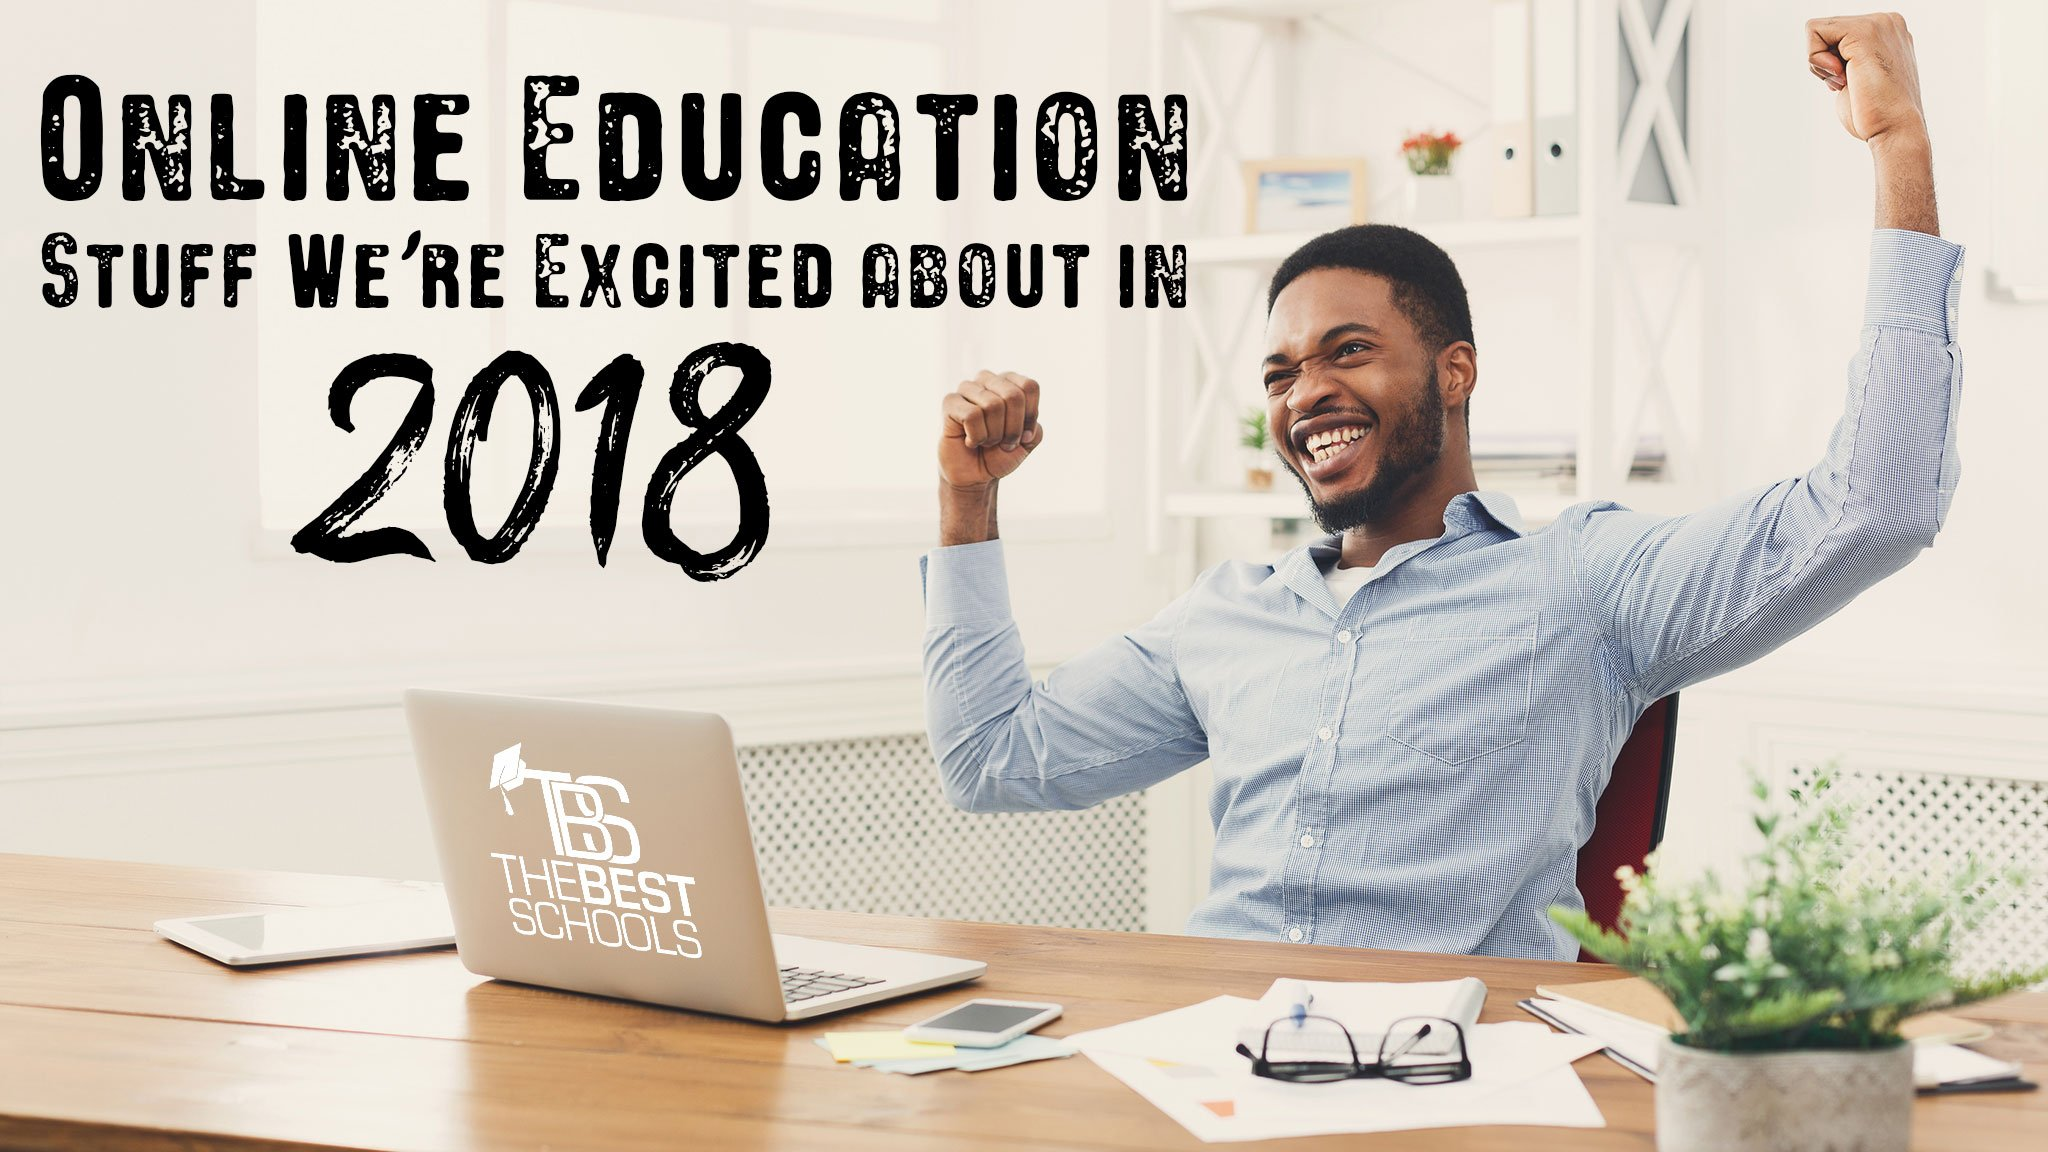 Online Education Stuff We're Excited about in 2018 | The Best Schools